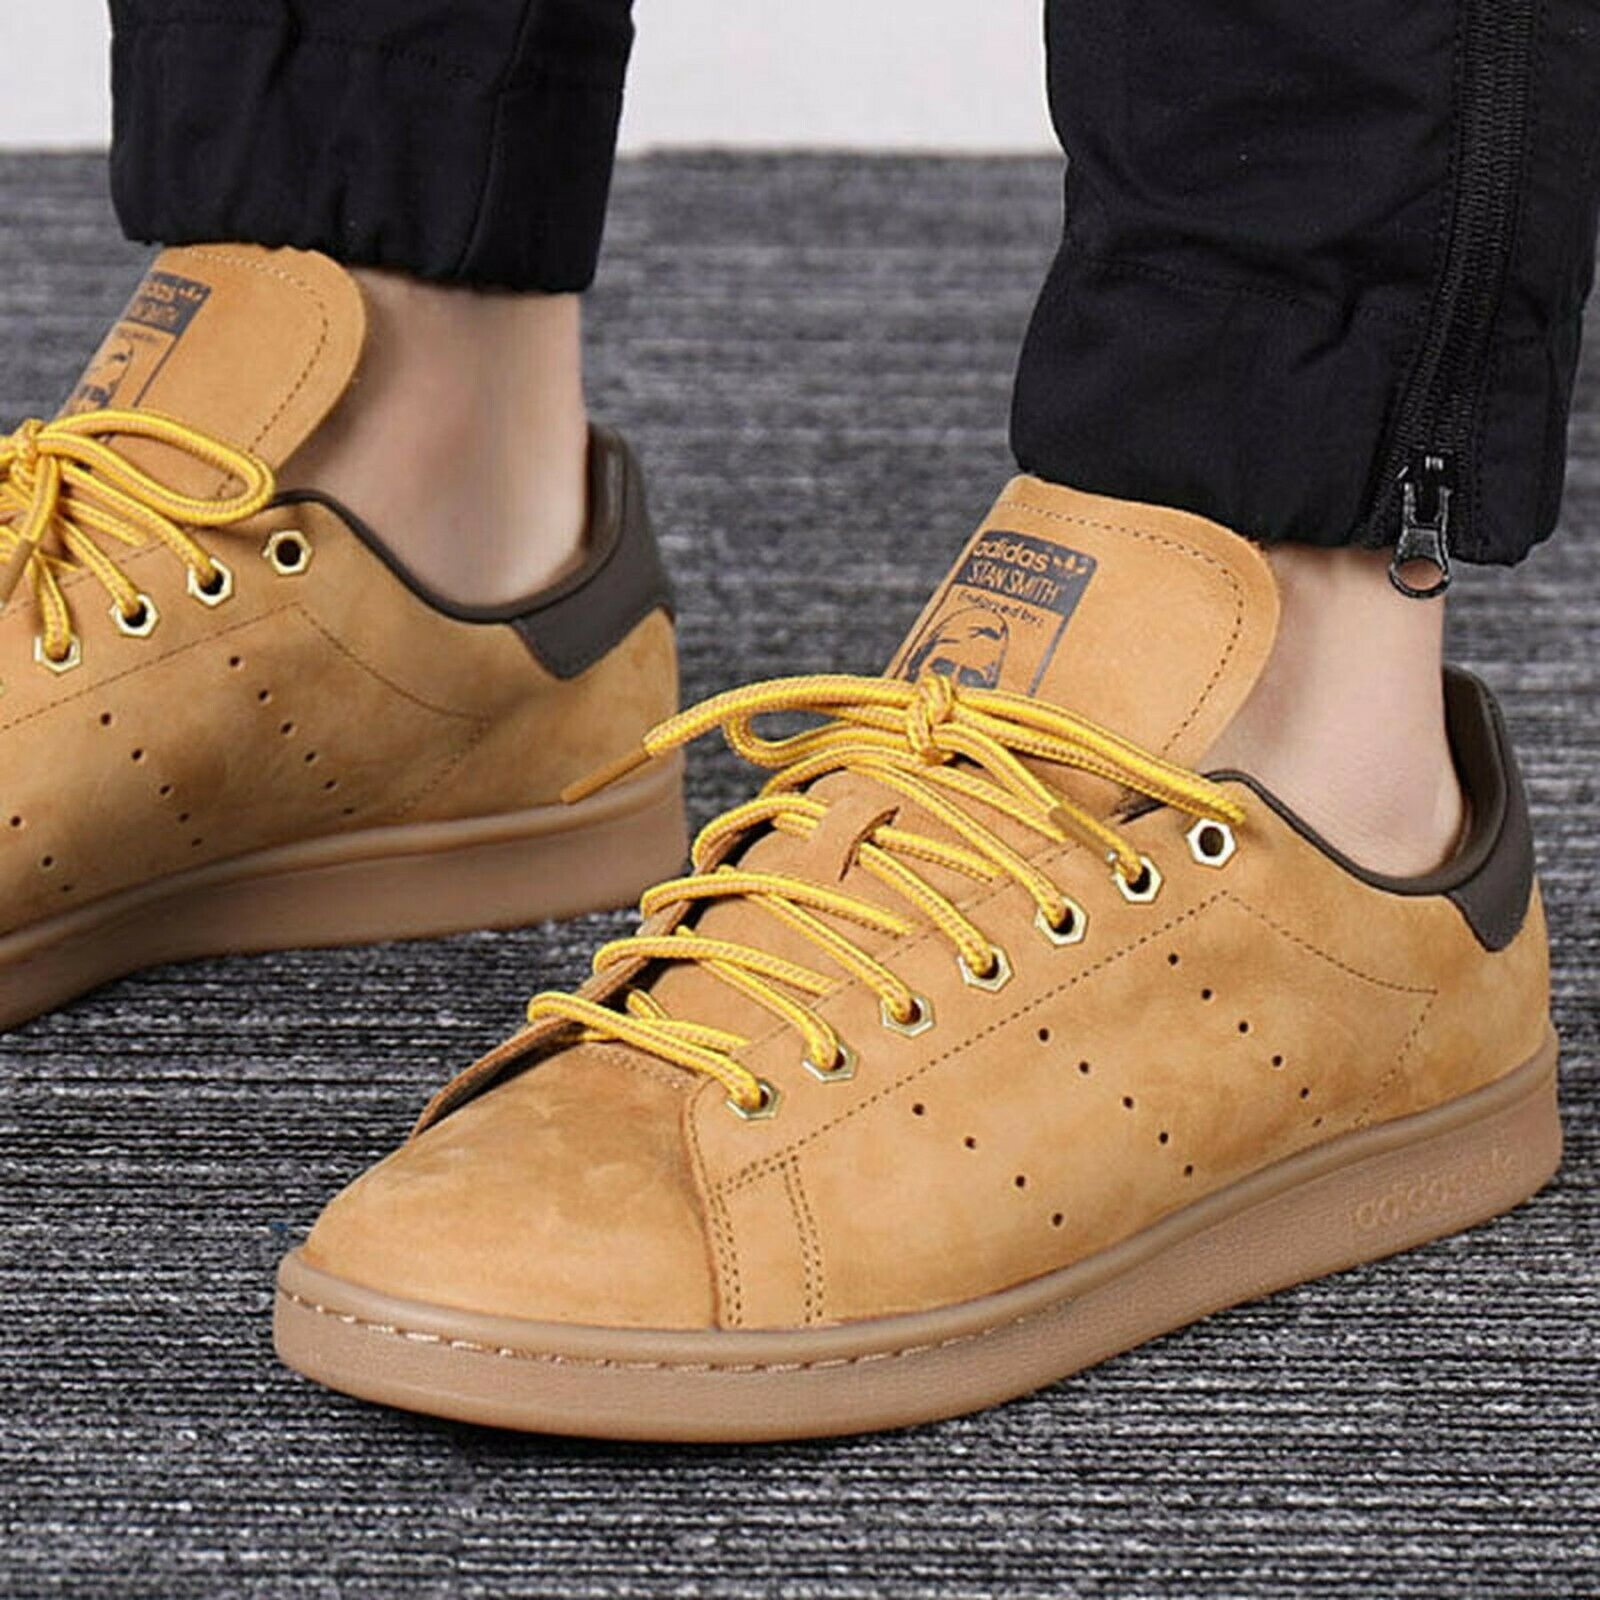 ADIDAS STAN SMITH WP MENS BROWN LEATHER SHOES HAMBURG SUEDE ...